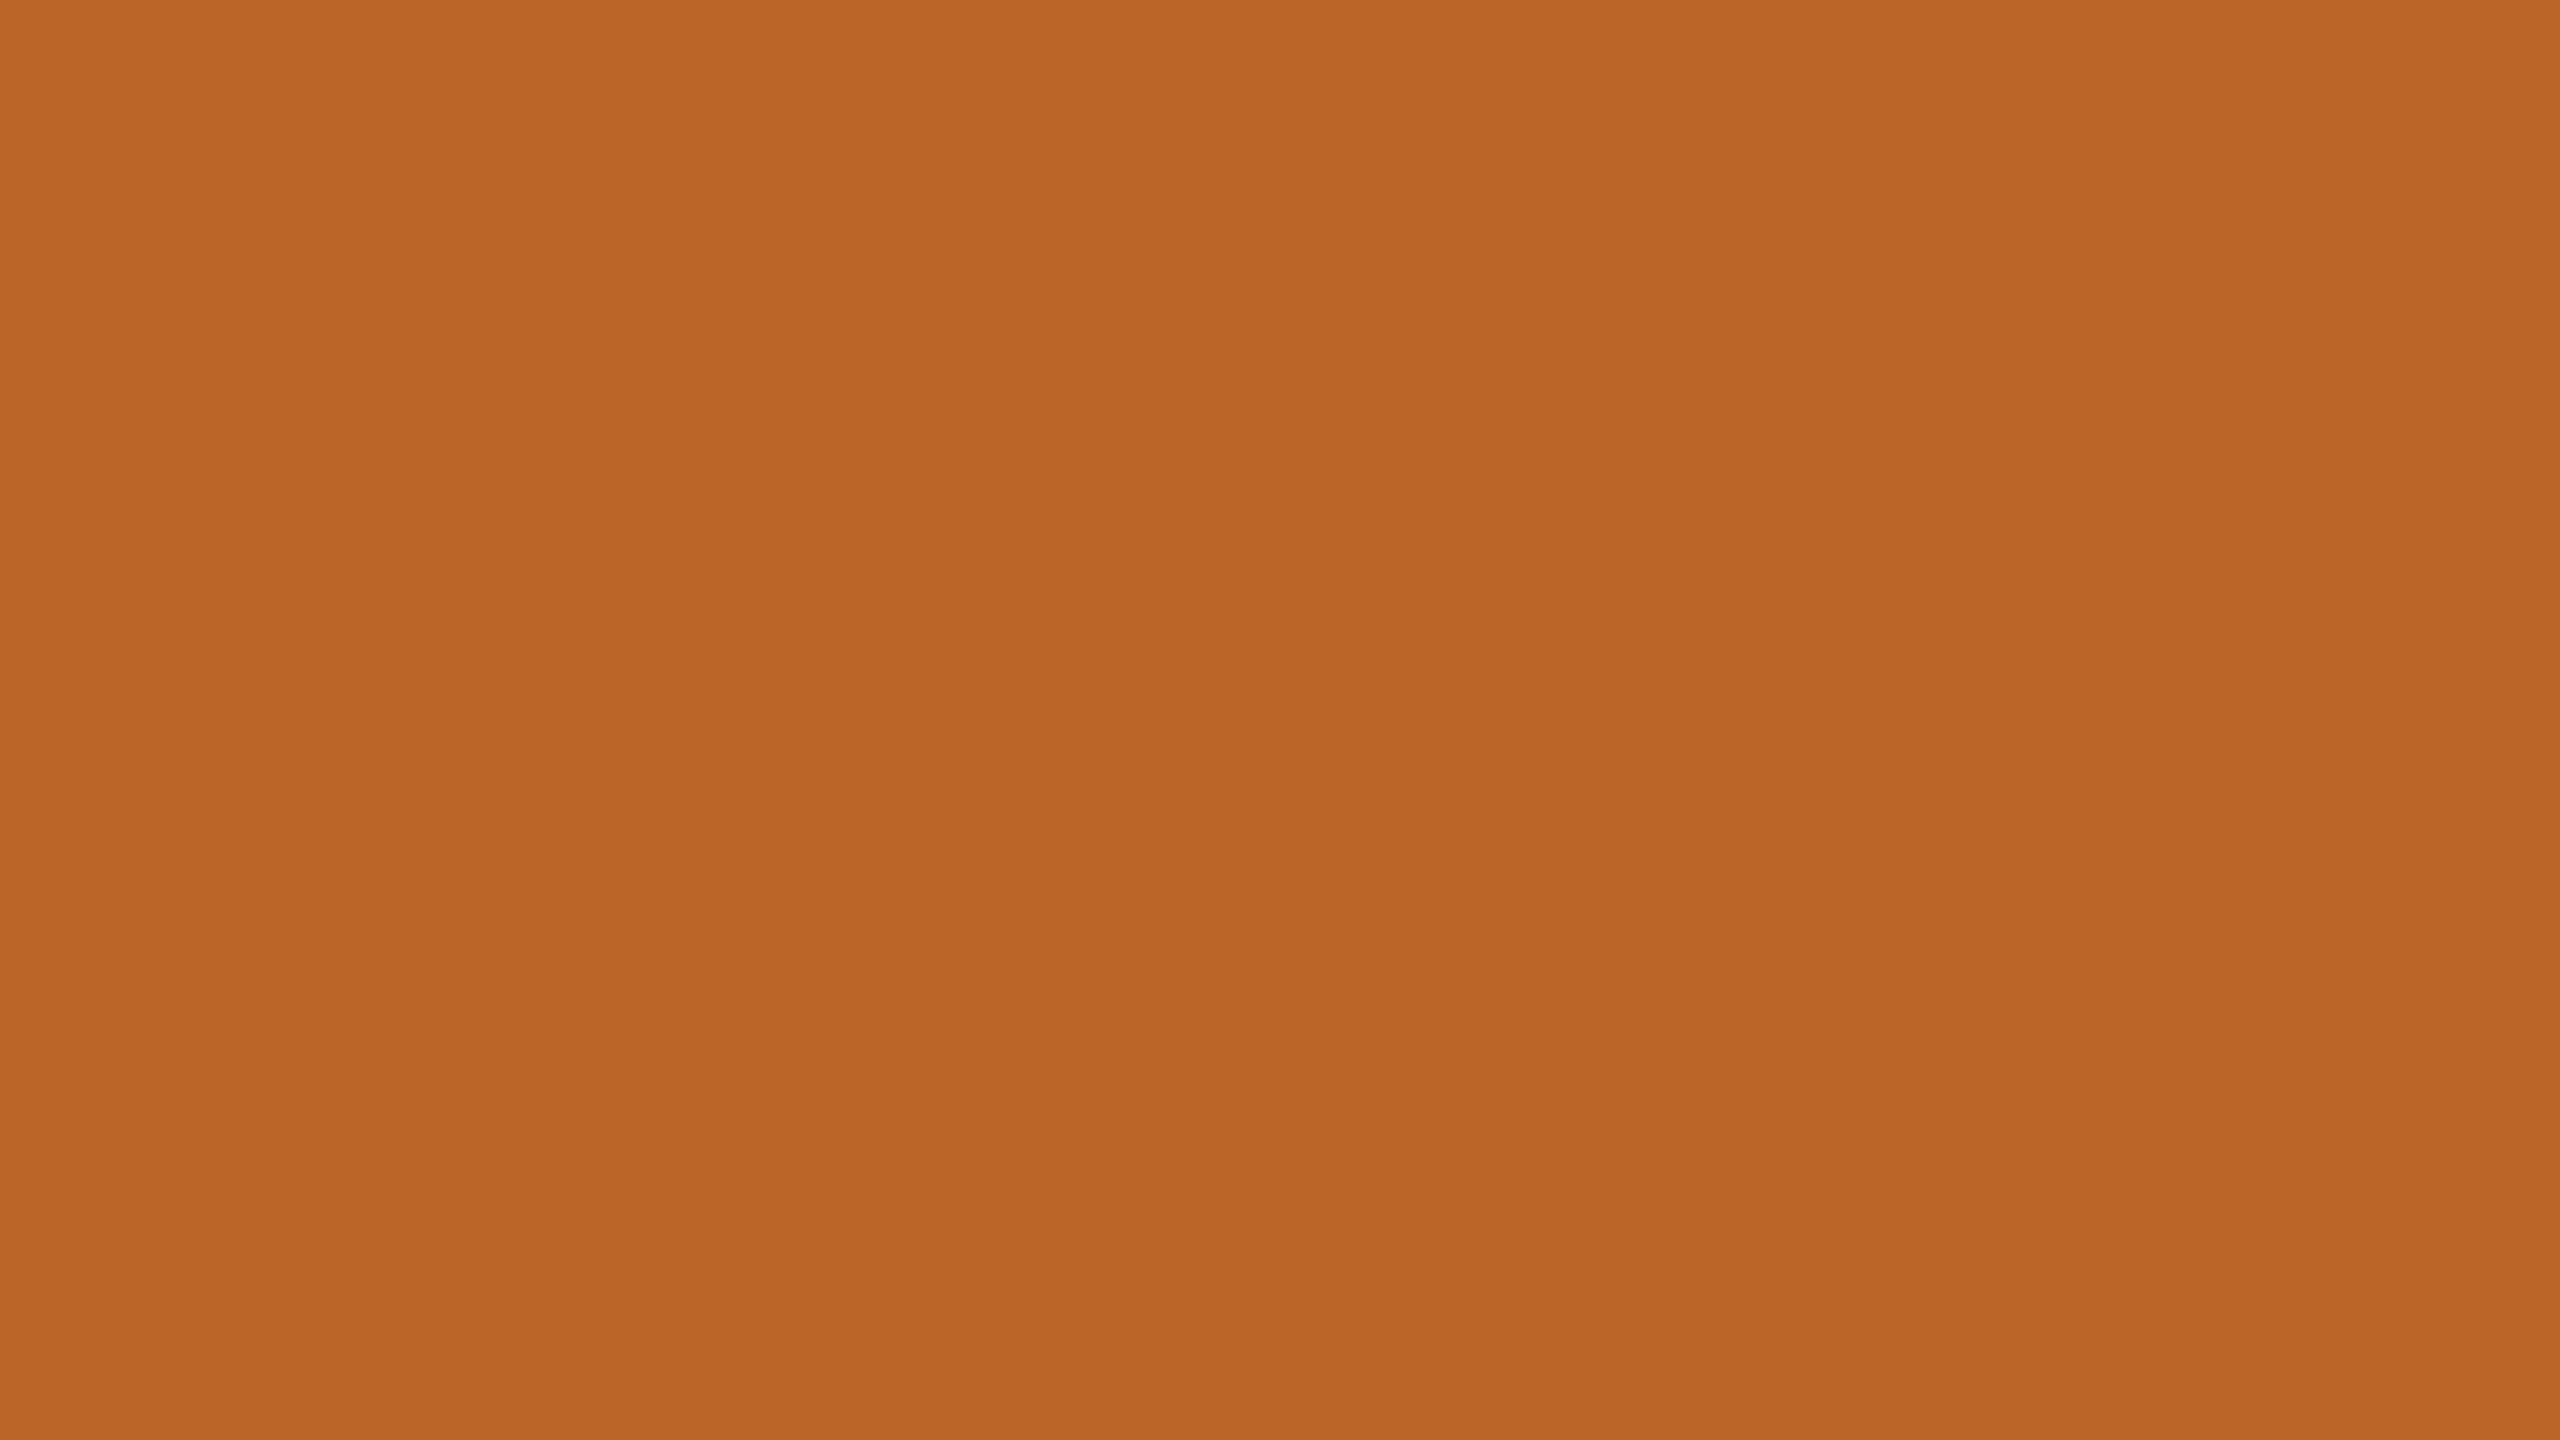 2560x1440 Ruddy Brown Solid Color Background